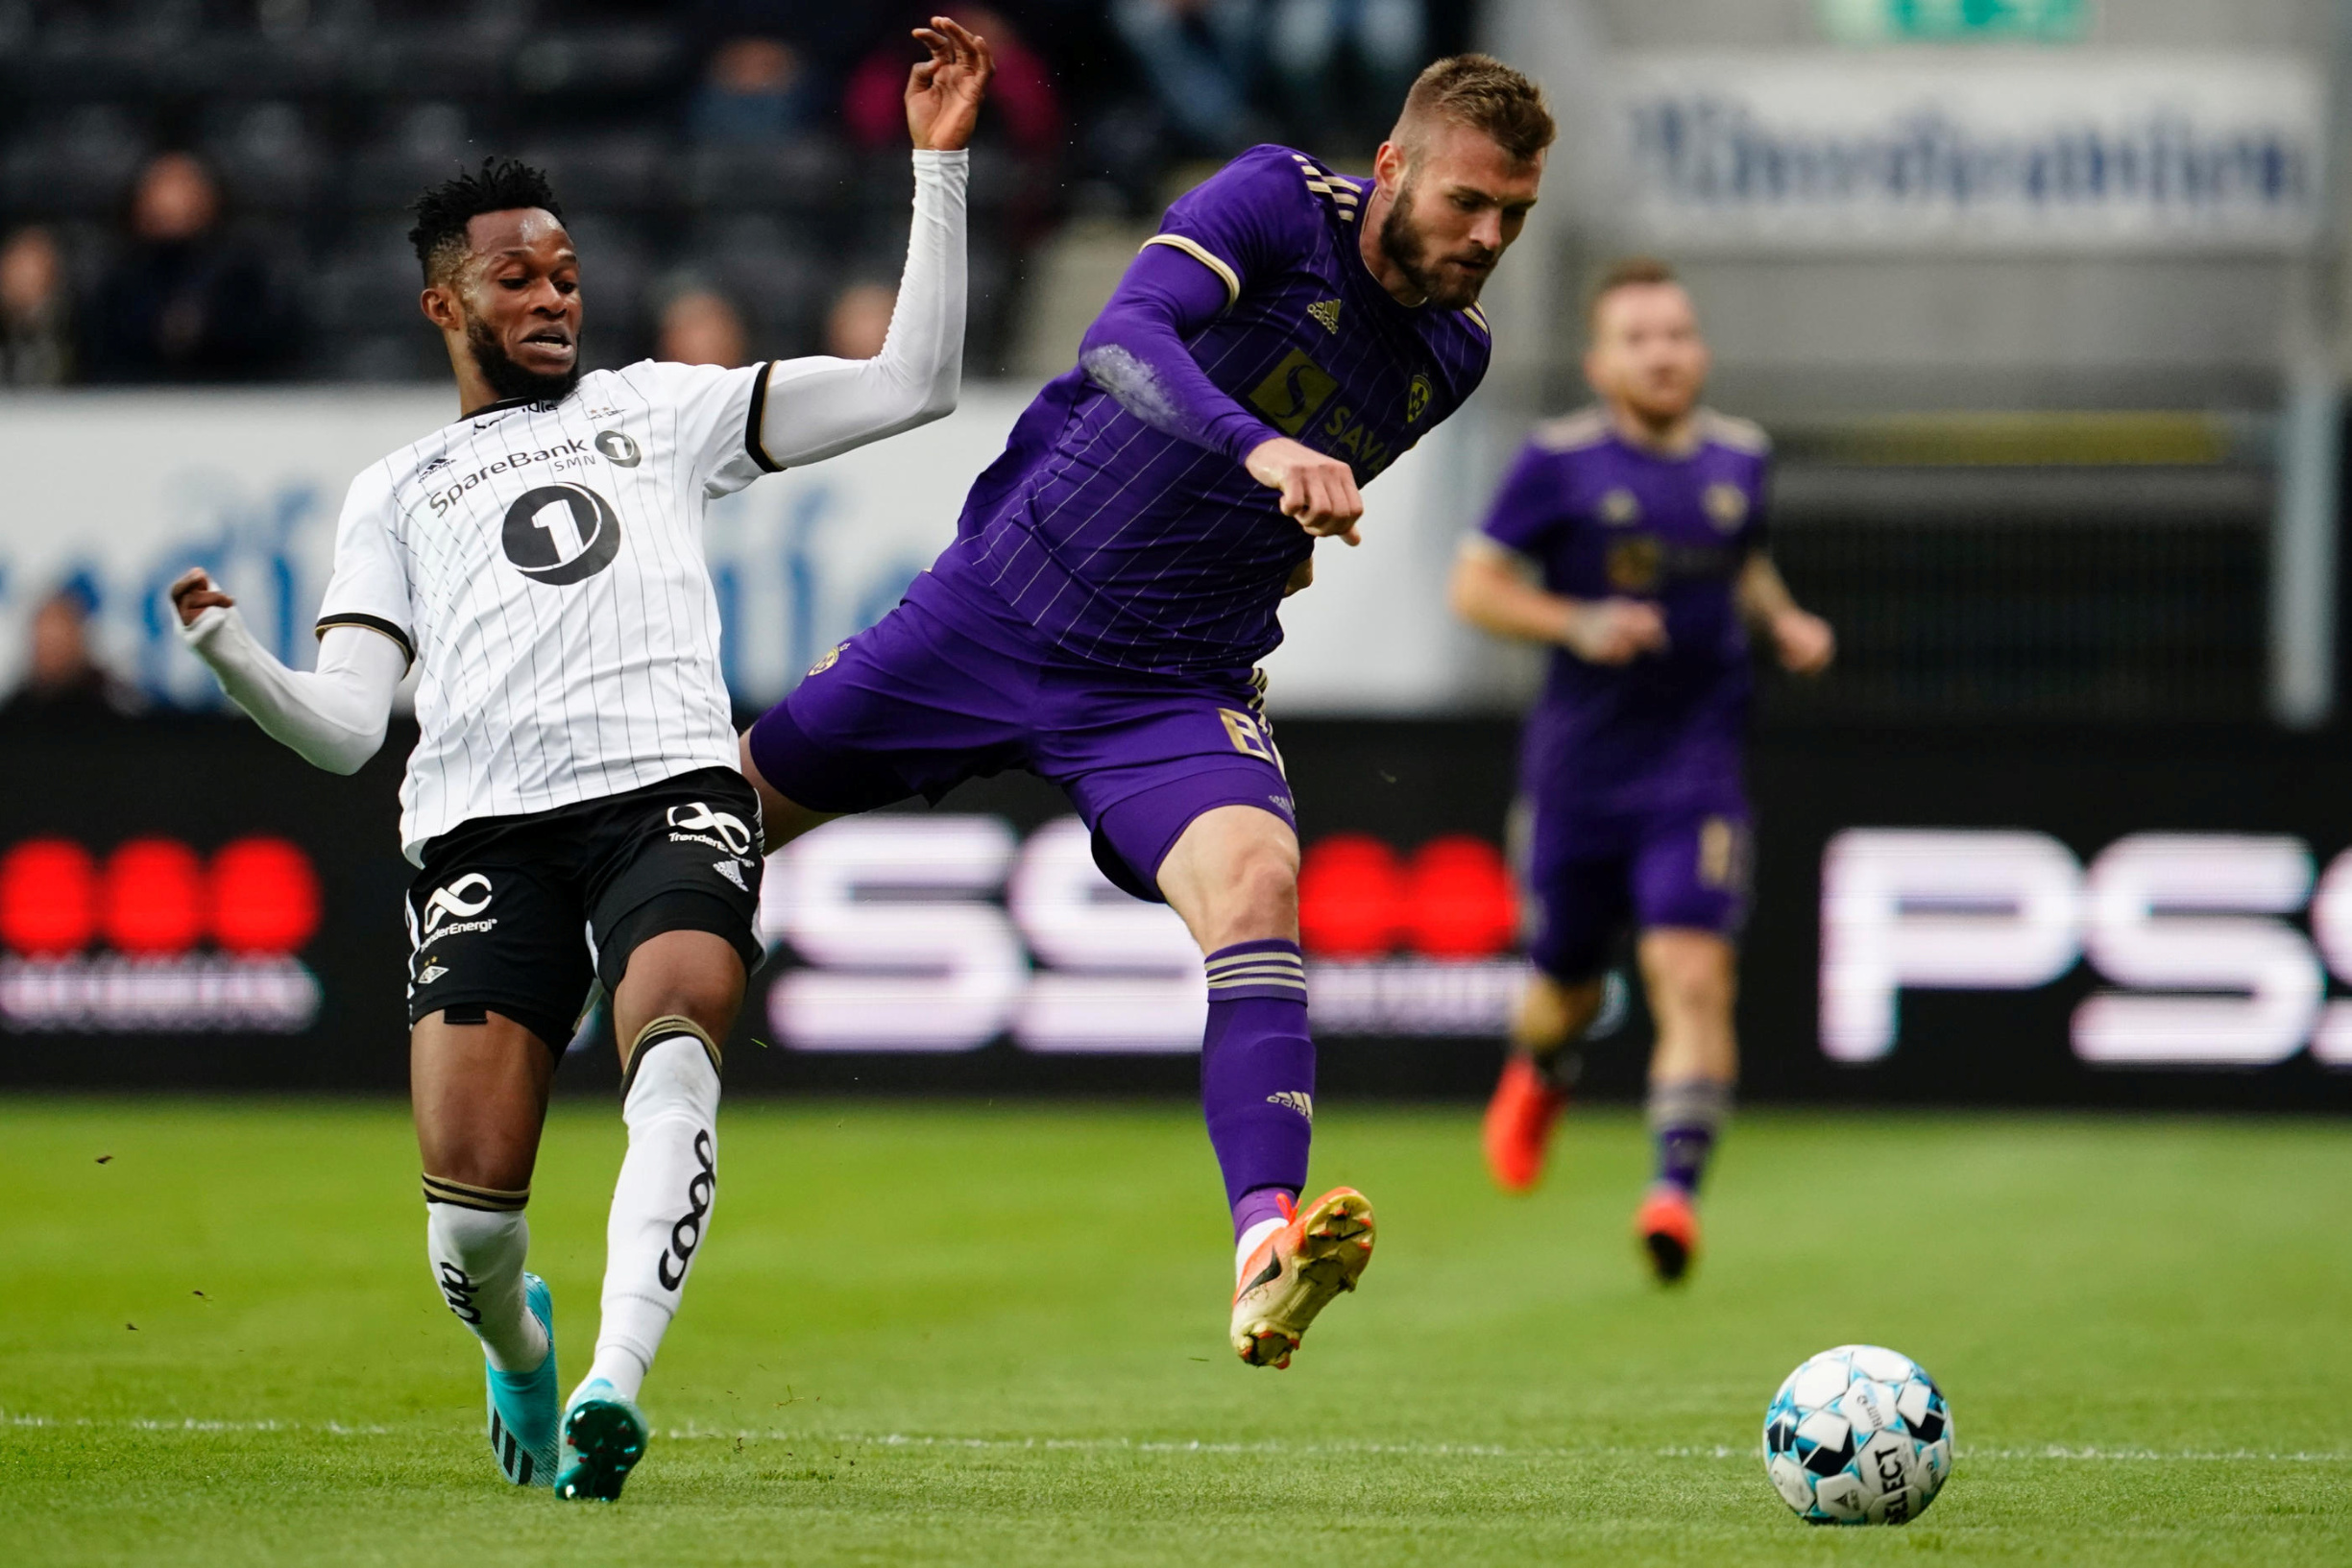 Soccer Football - Champions League - Third Qualifying Round Second Leg - Rosenborg BK v NK Maribor - Lerkendal Stadium, Trondheim, Norway - August 13, 2019. Rosenborg's Samuel Adegbenro and Maribor's Alexandru Cretu in action. NTB Scanpix/Ole Martin Wold via REUTERS   ATTENTION EDITORS - THIS IMAGE WAS PROVIDED BY A THIRD PARTY. NORWAY OUT. NO COMMERCIAL OR EDITORIAL SALES IN NORWAY.